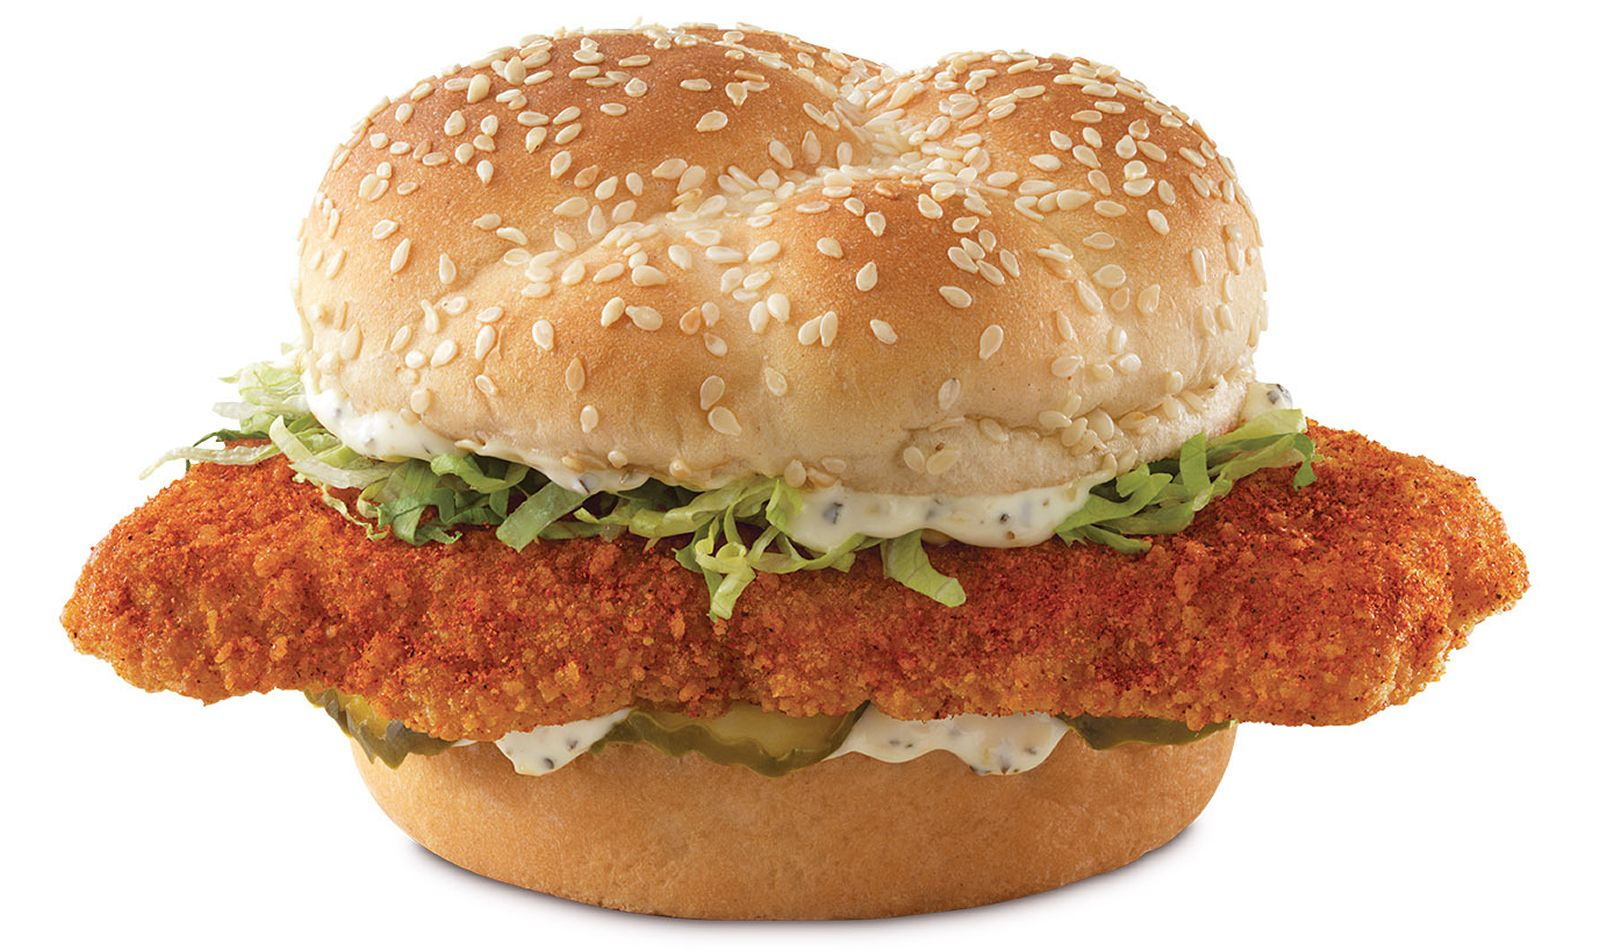 Arby's New Nashville Hot Fish is the Spicy Fish Sandwich You Didn't Know You Wanted Until Now